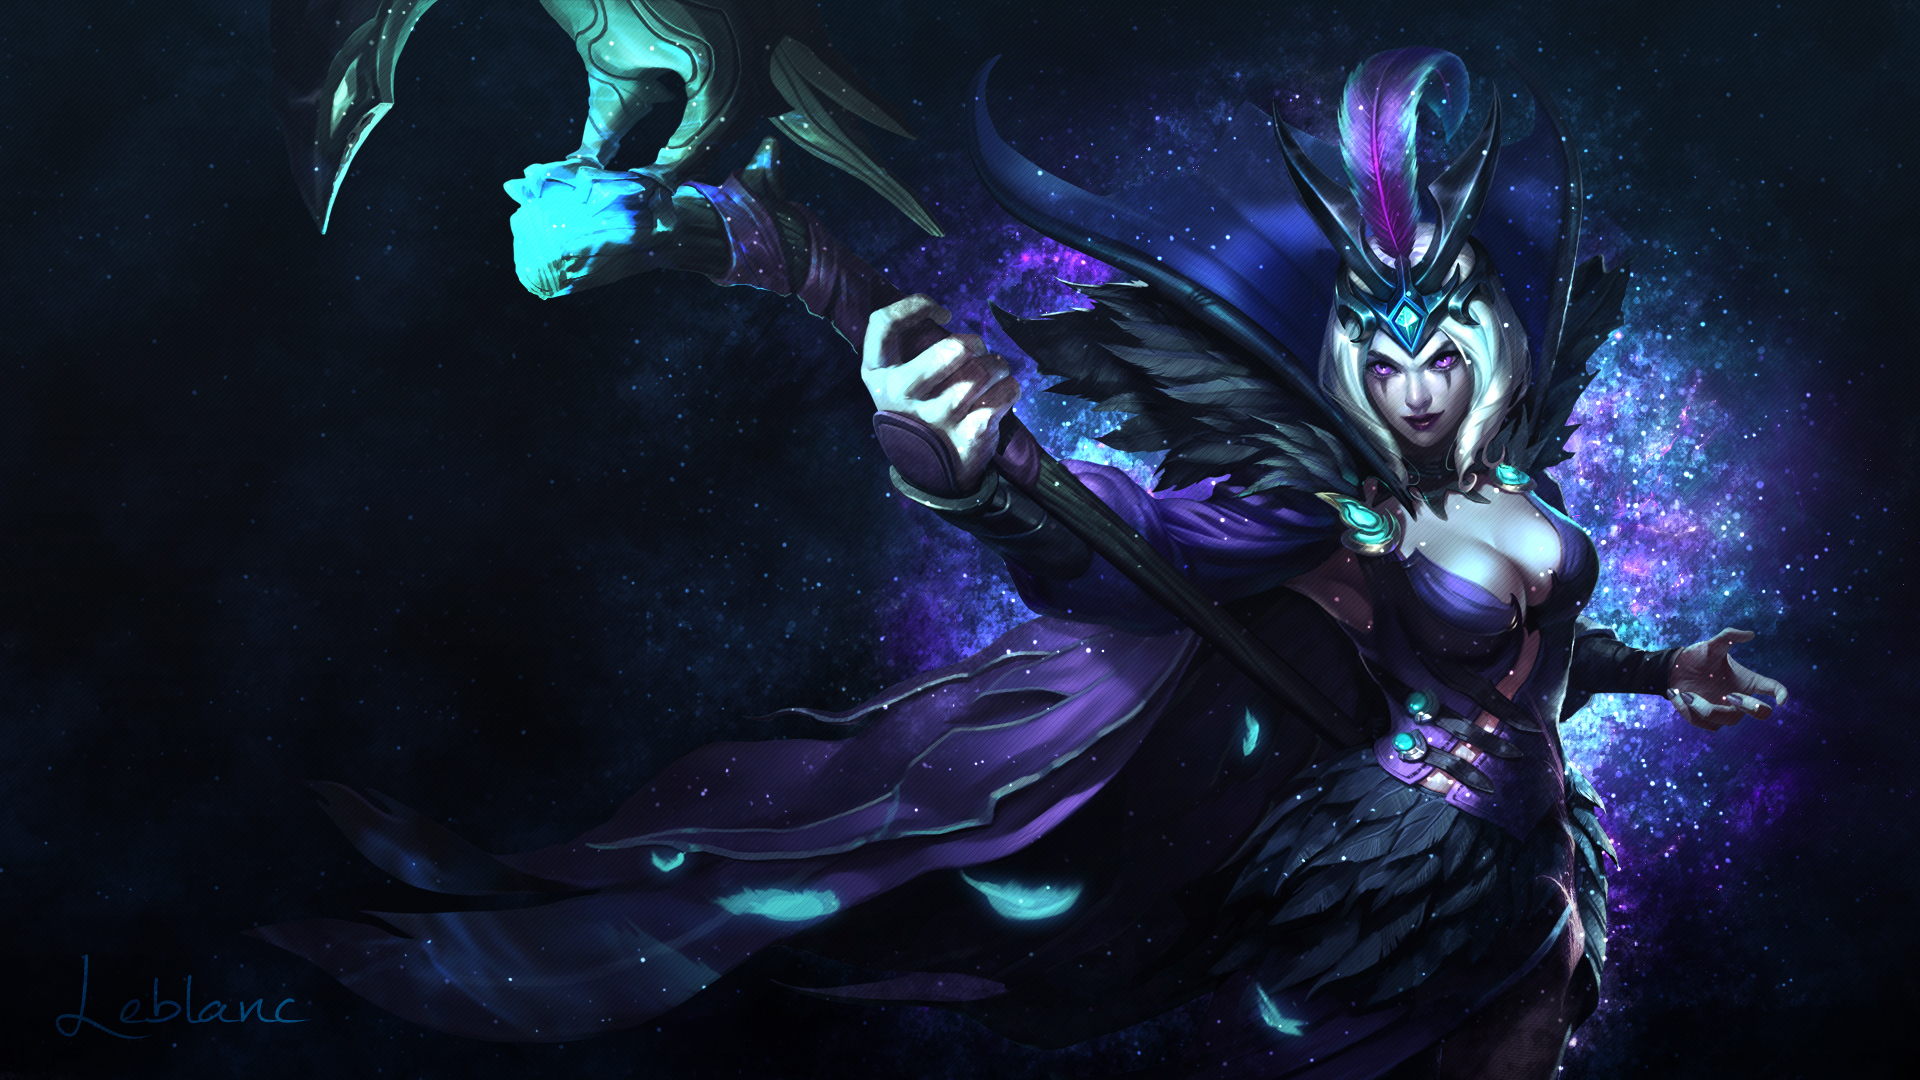 LeBlanc wallpaper